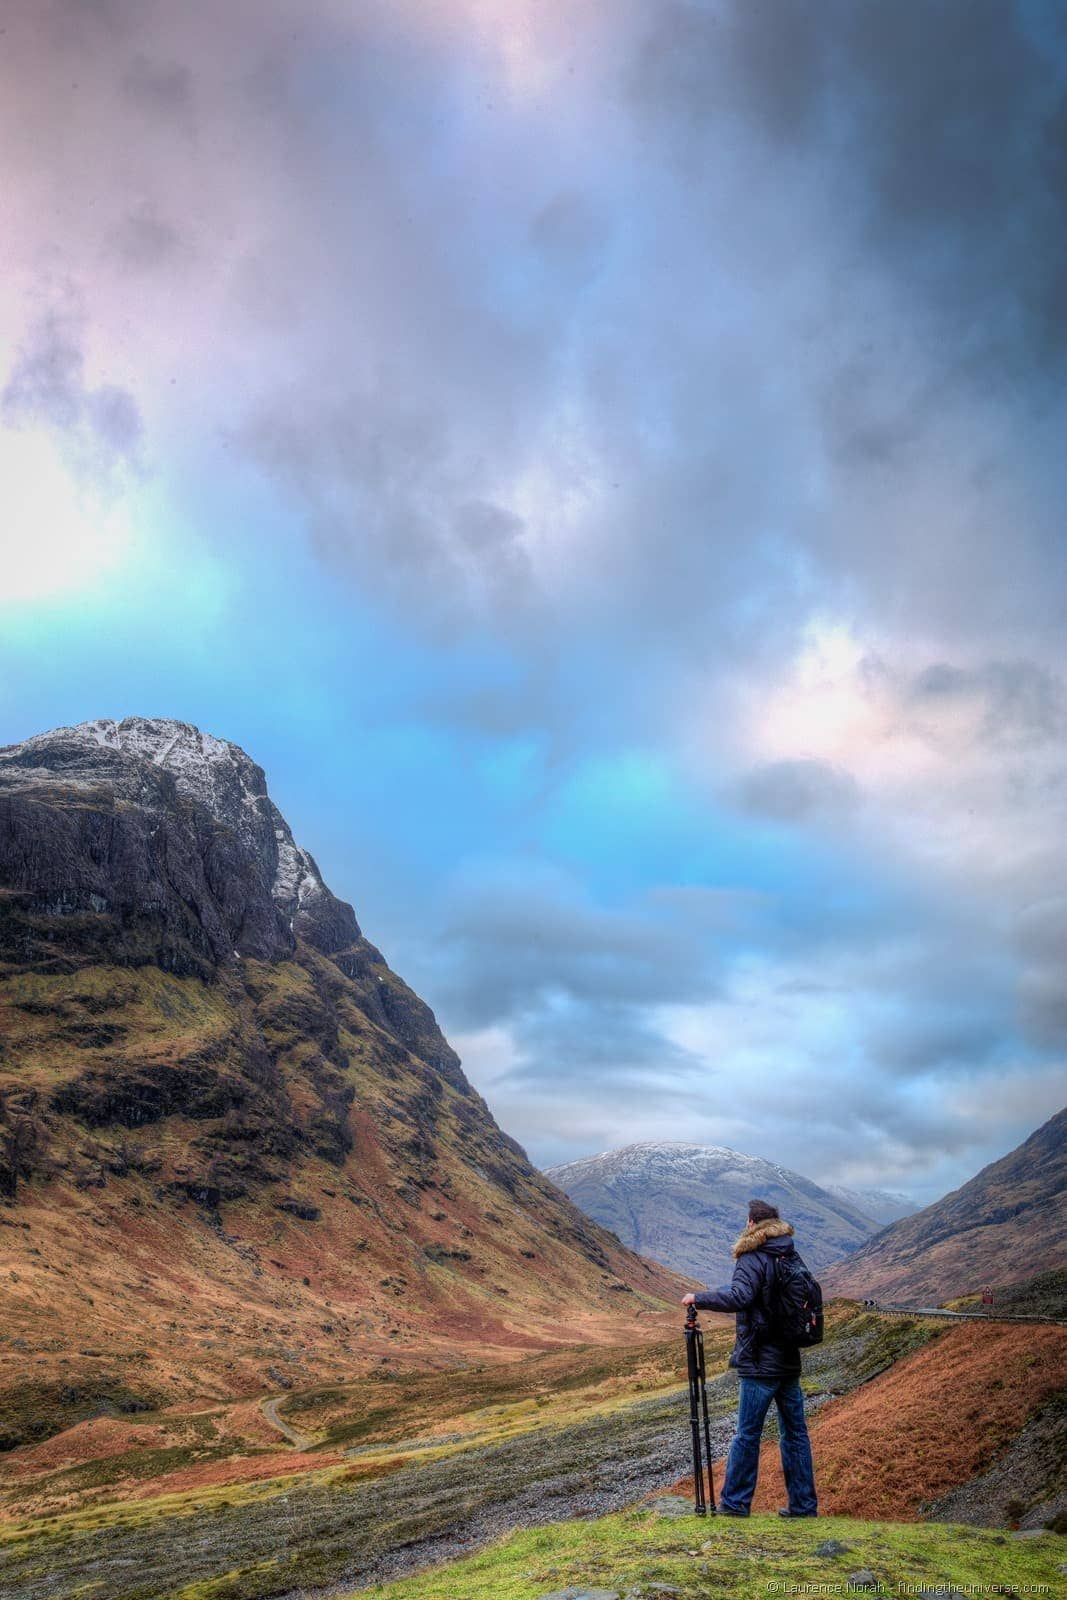 dante vanguard tripod highlands scotland glencoe